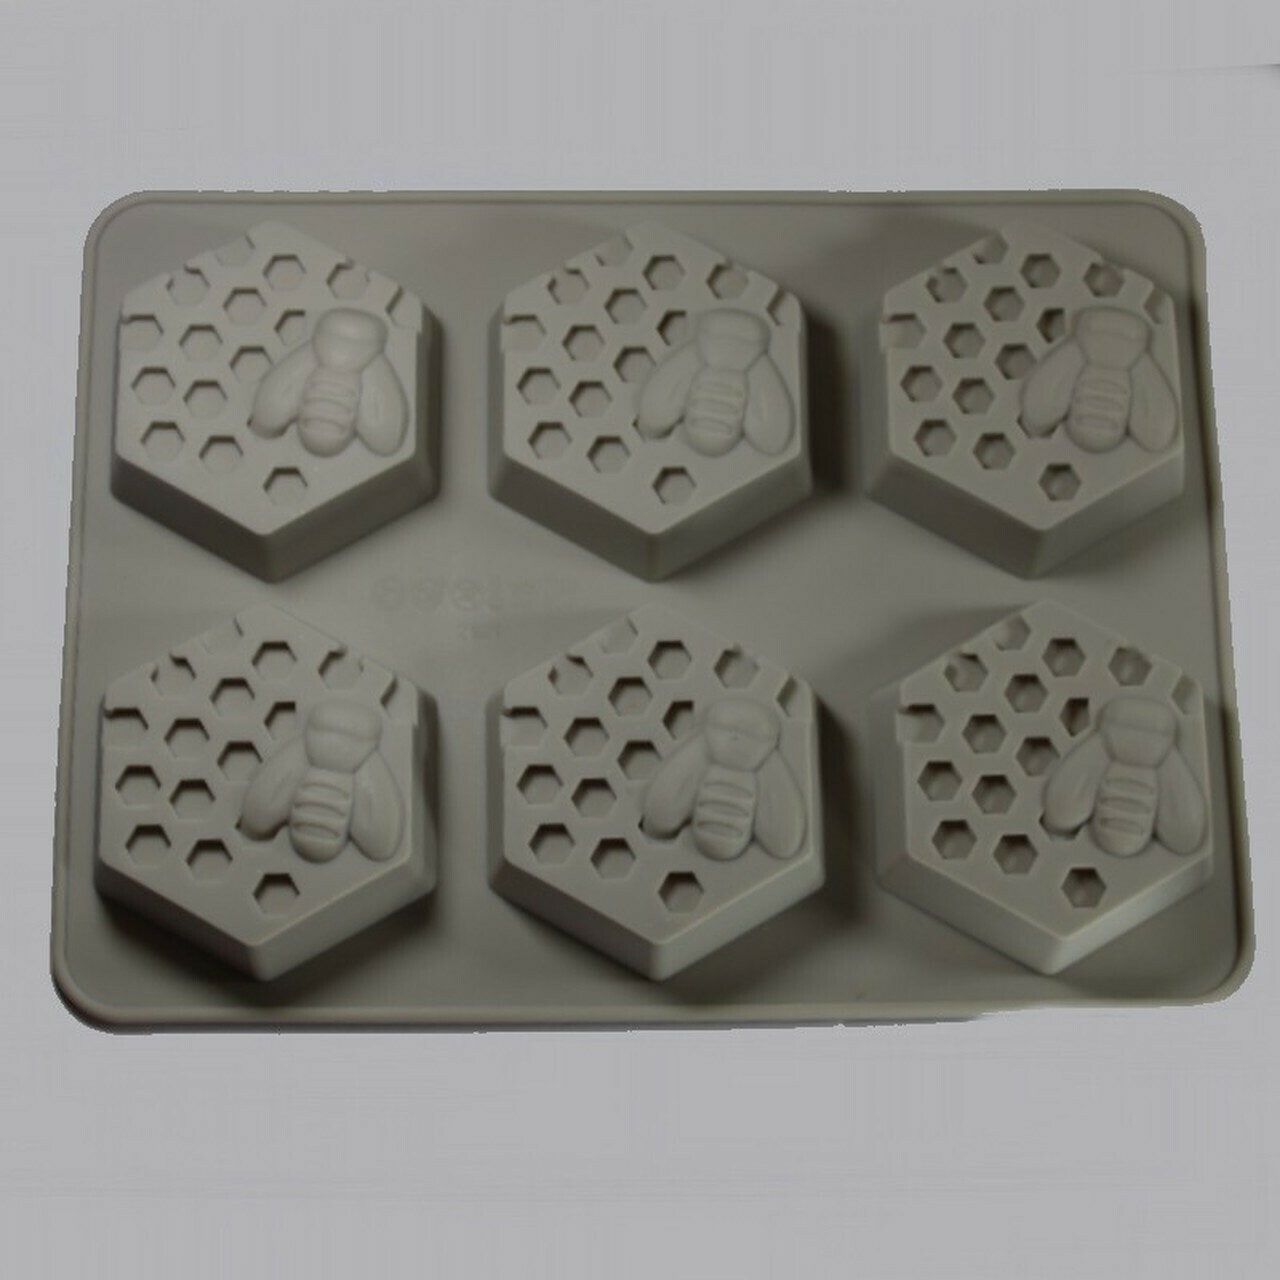 6 Cavity Honeycomb Bee Mold Silicone